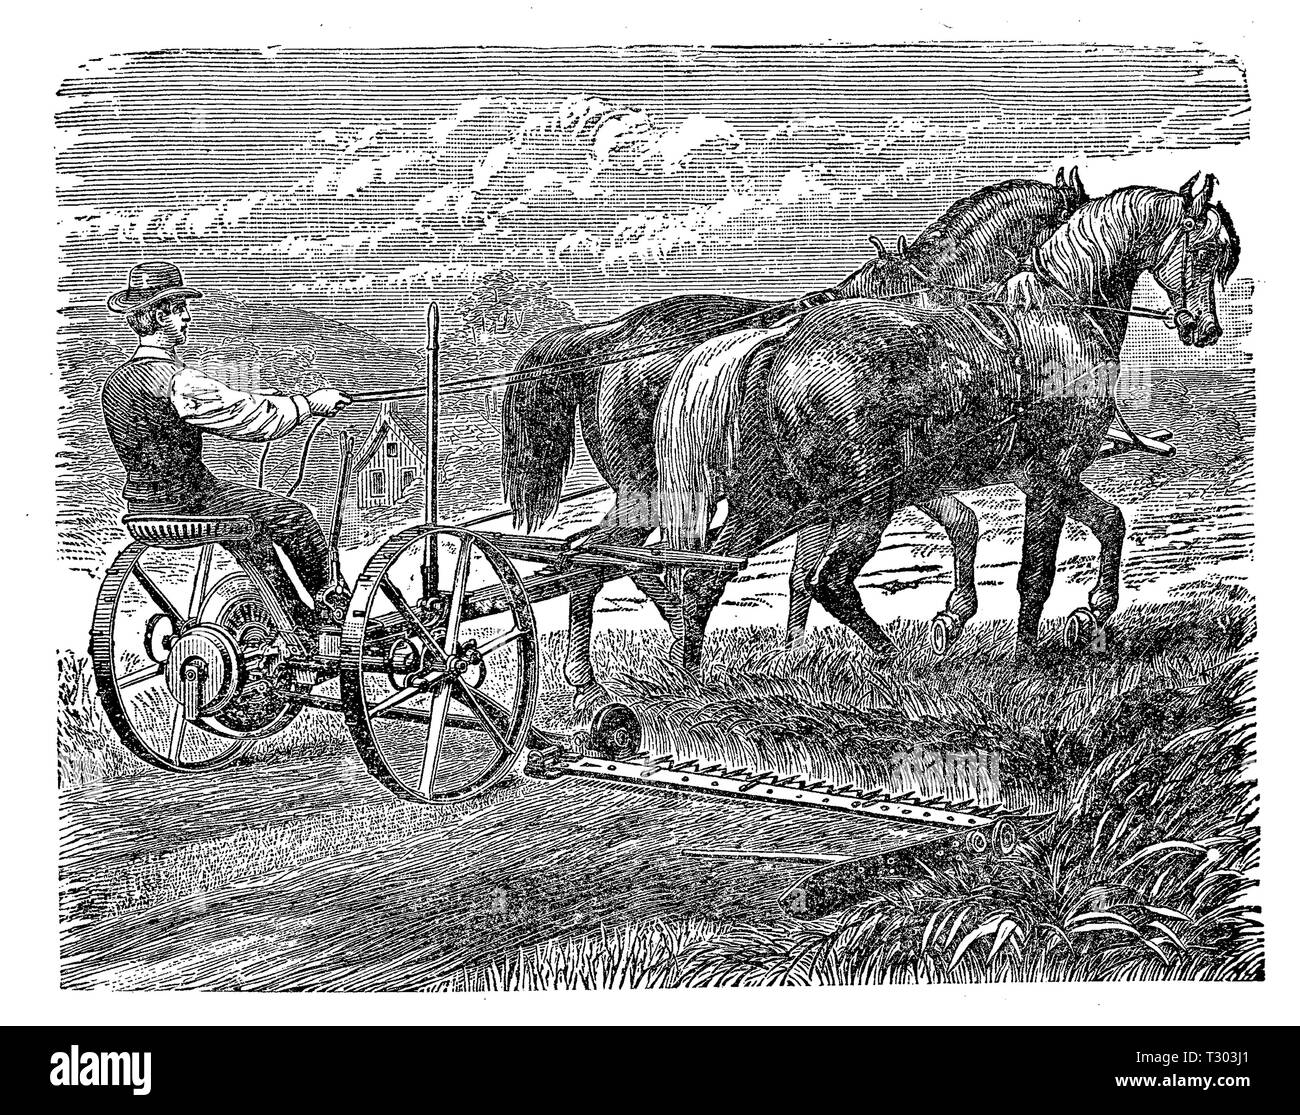 Farming machine XIX century: grass mower trained by horses with a reaping attachment for cutting grass and grain. - Stock Image